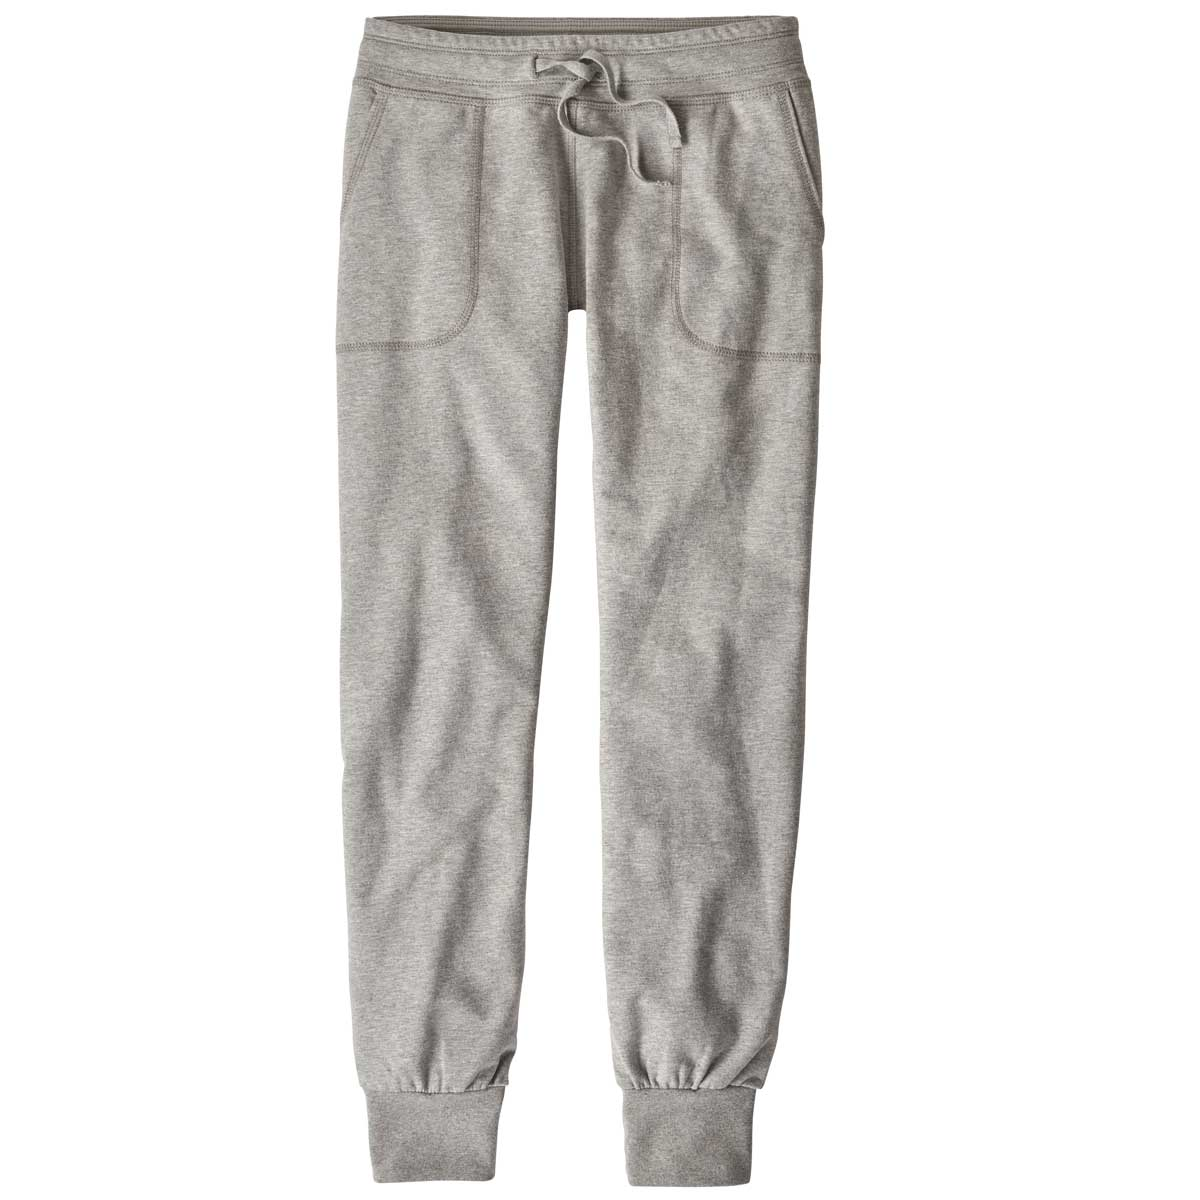 Patagonia women's Ahnya Pant in Drifter Grey front view